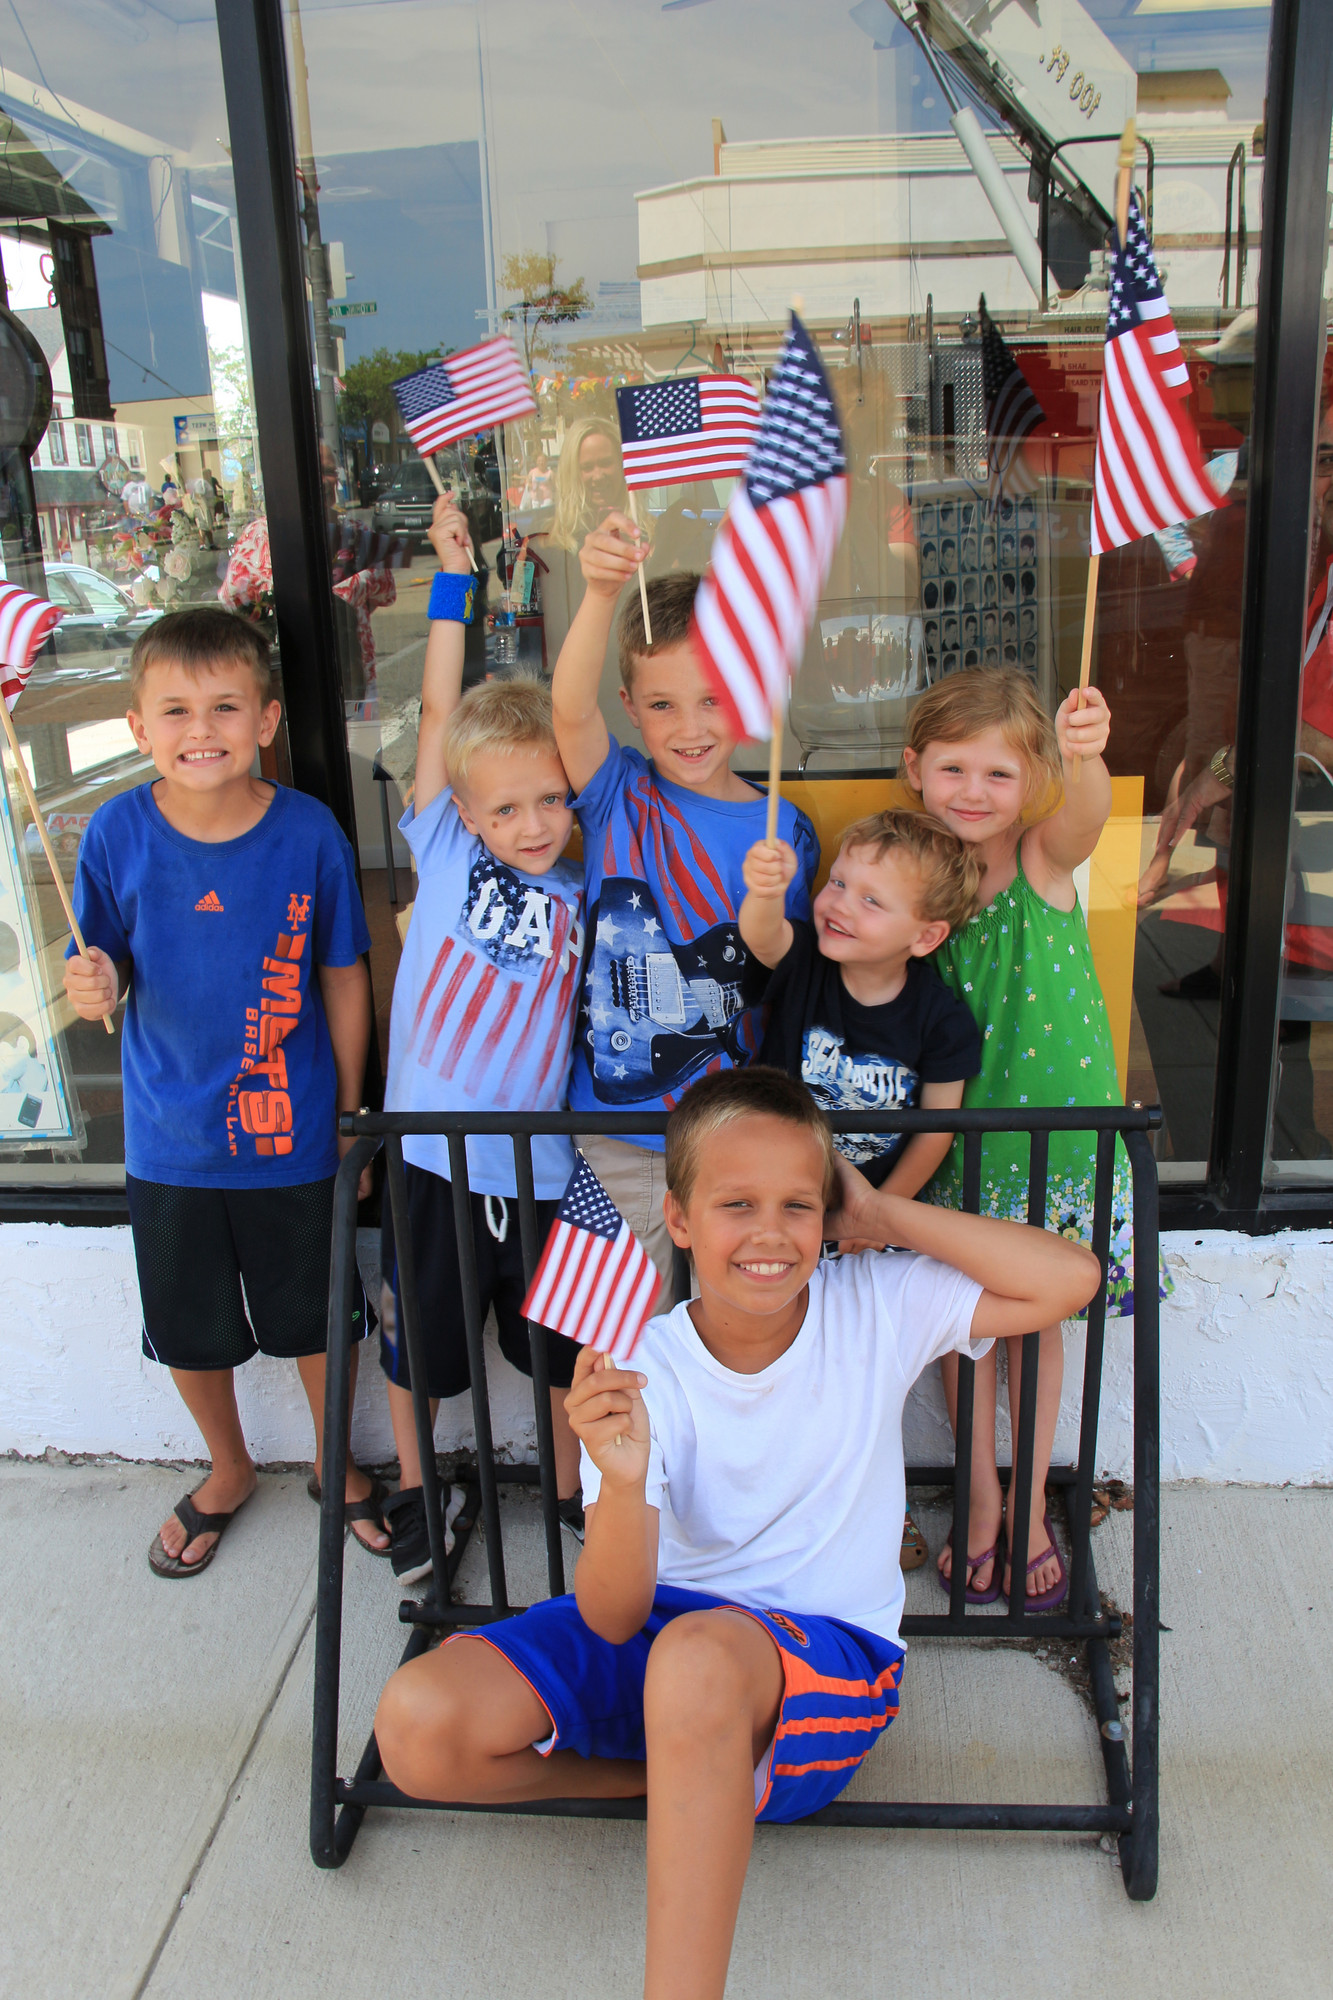 Thomas Wheeler, left, Patrick Henry, Joseph Henry, Jack Wheeler, Anna Wheeler, and Thomas Kelly cheered the soldiers on from the sidewalk.